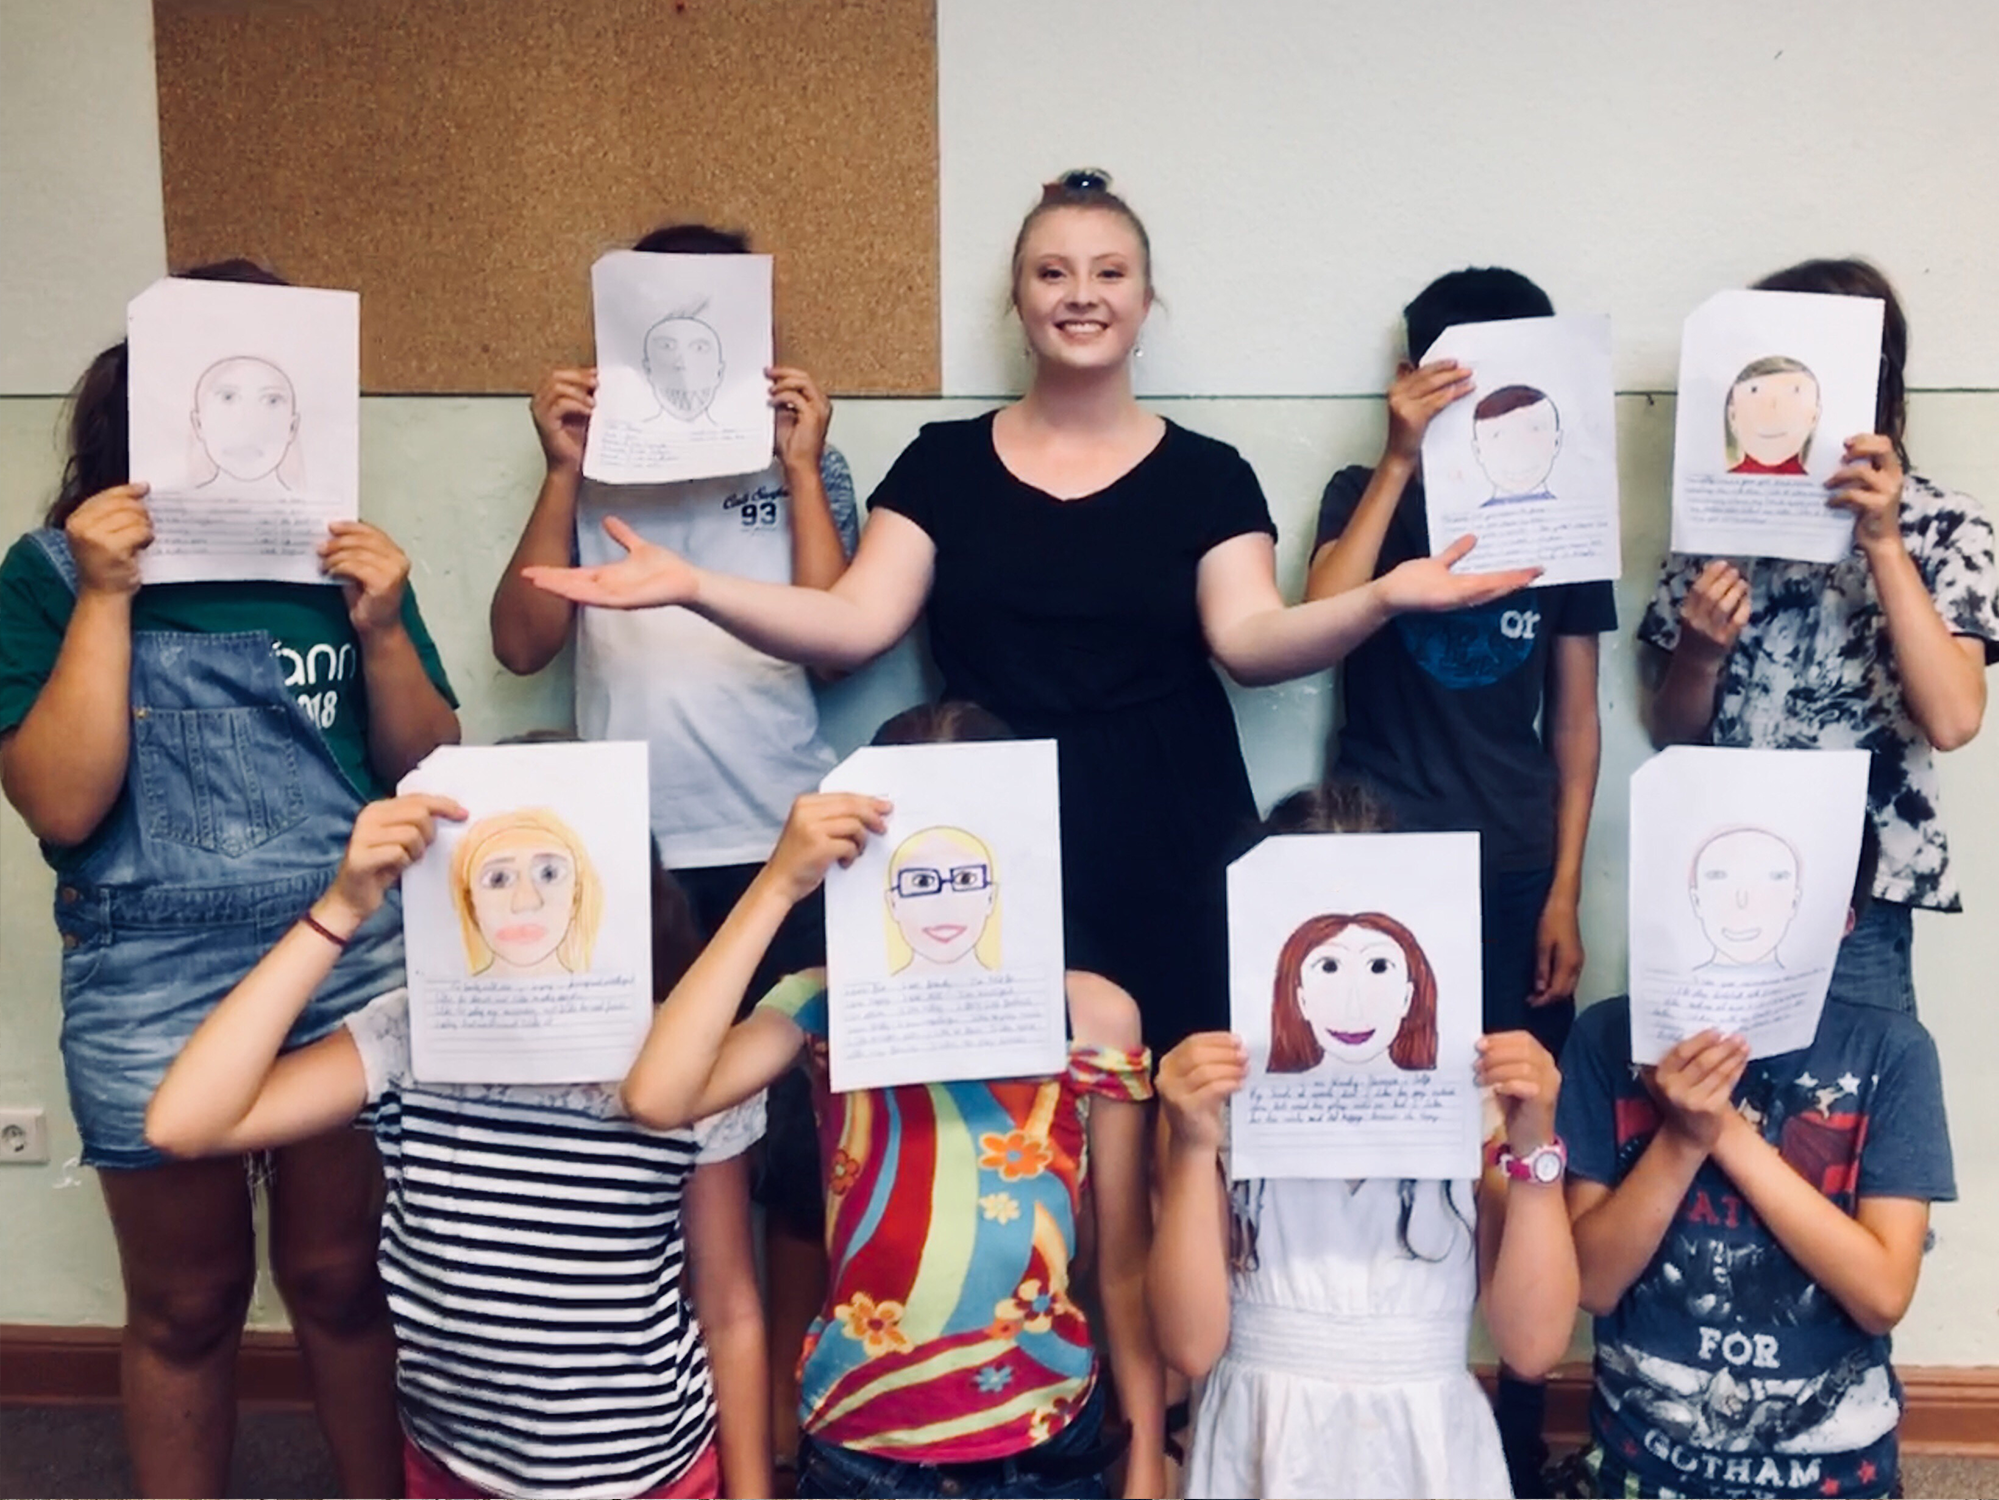 Erica Komp poses with German students who are holding their self portrait drawings